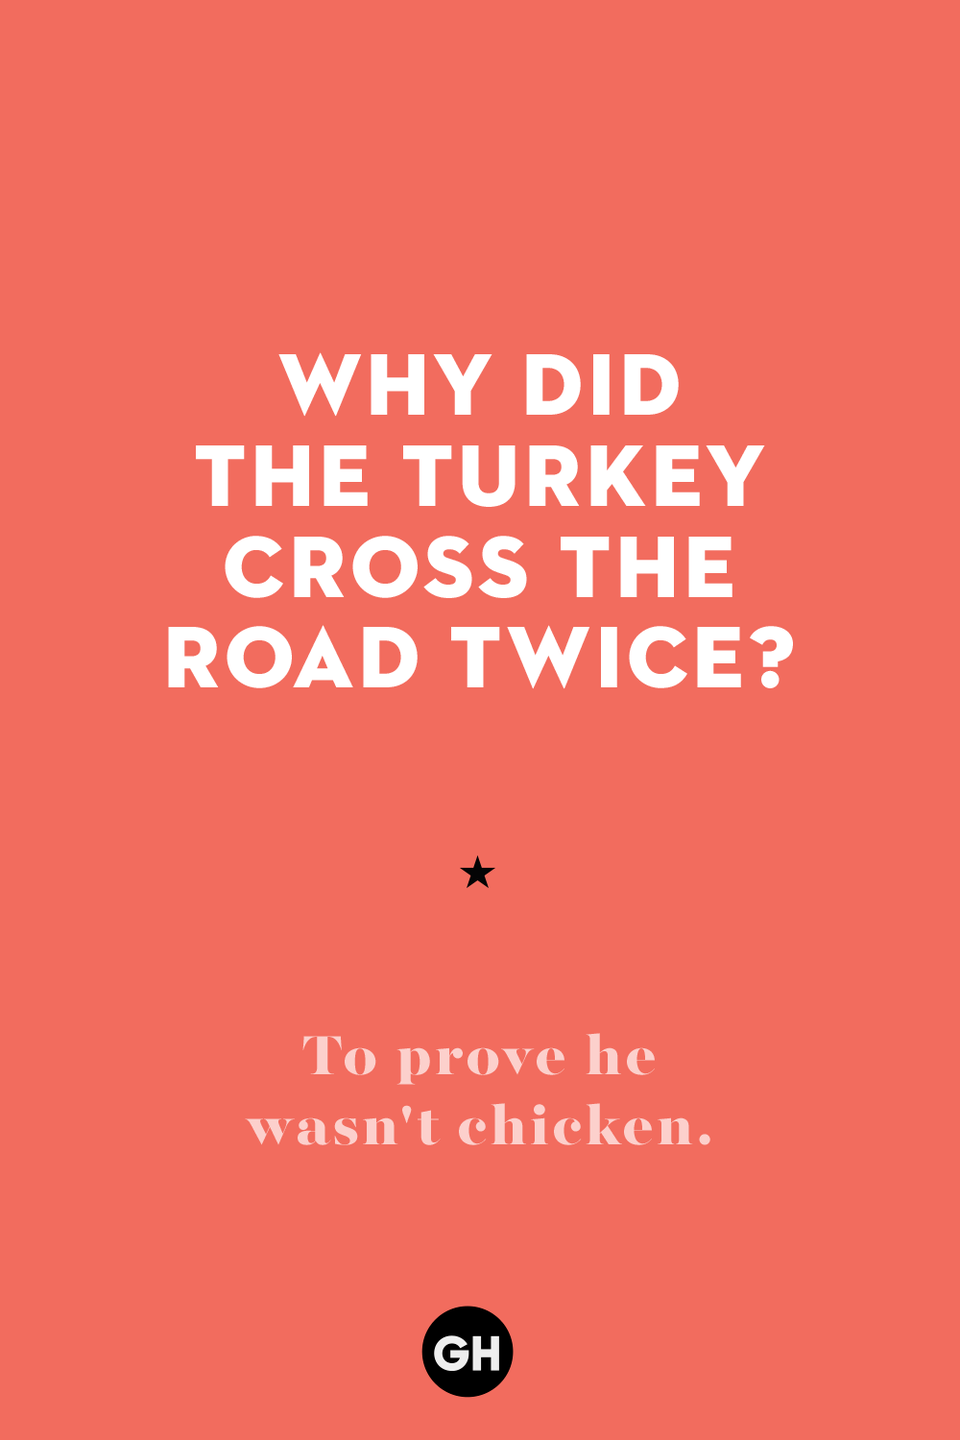 <p>To prove he wasn't chicken.<br></p>